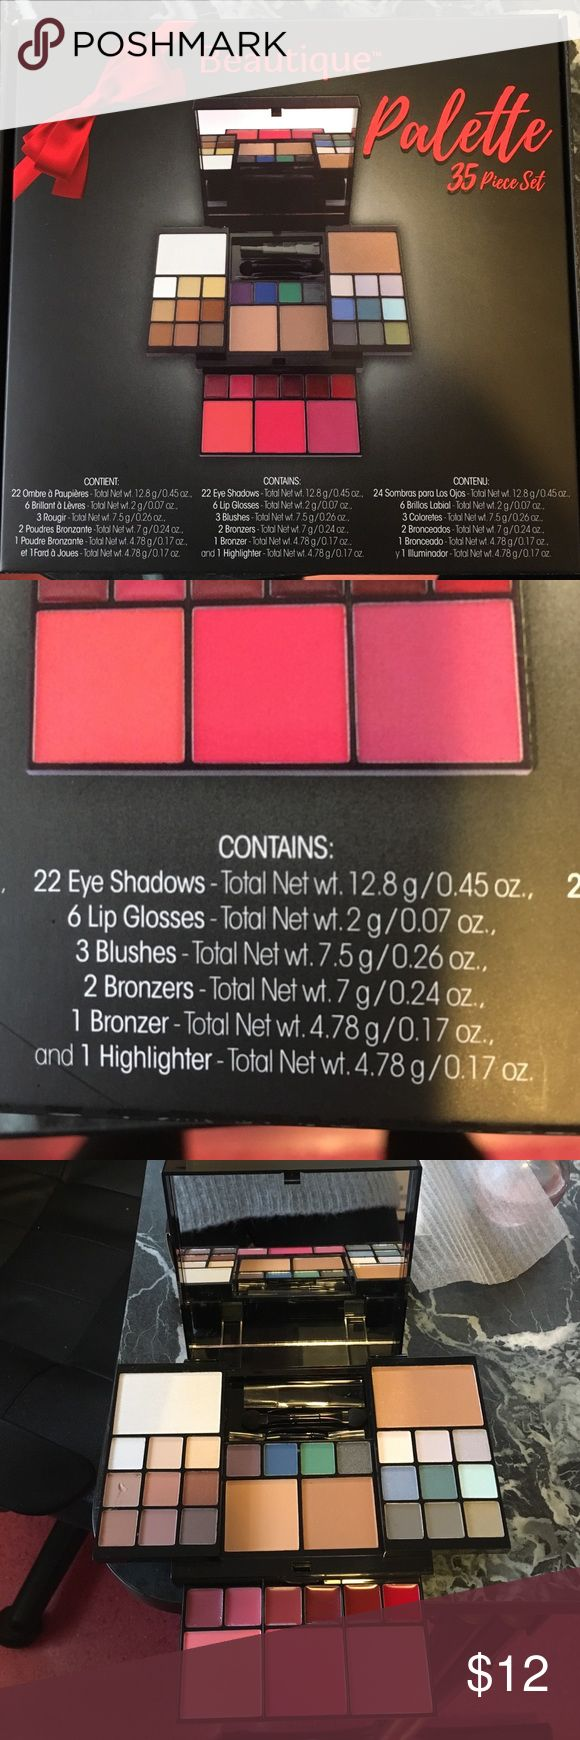 Beautique make up palette Brand new never used beautique 35 piece set make up palette. One of the eye shadows has a small nick out of it but otherwise perfect condition. beautique Makeup Eyeshadow